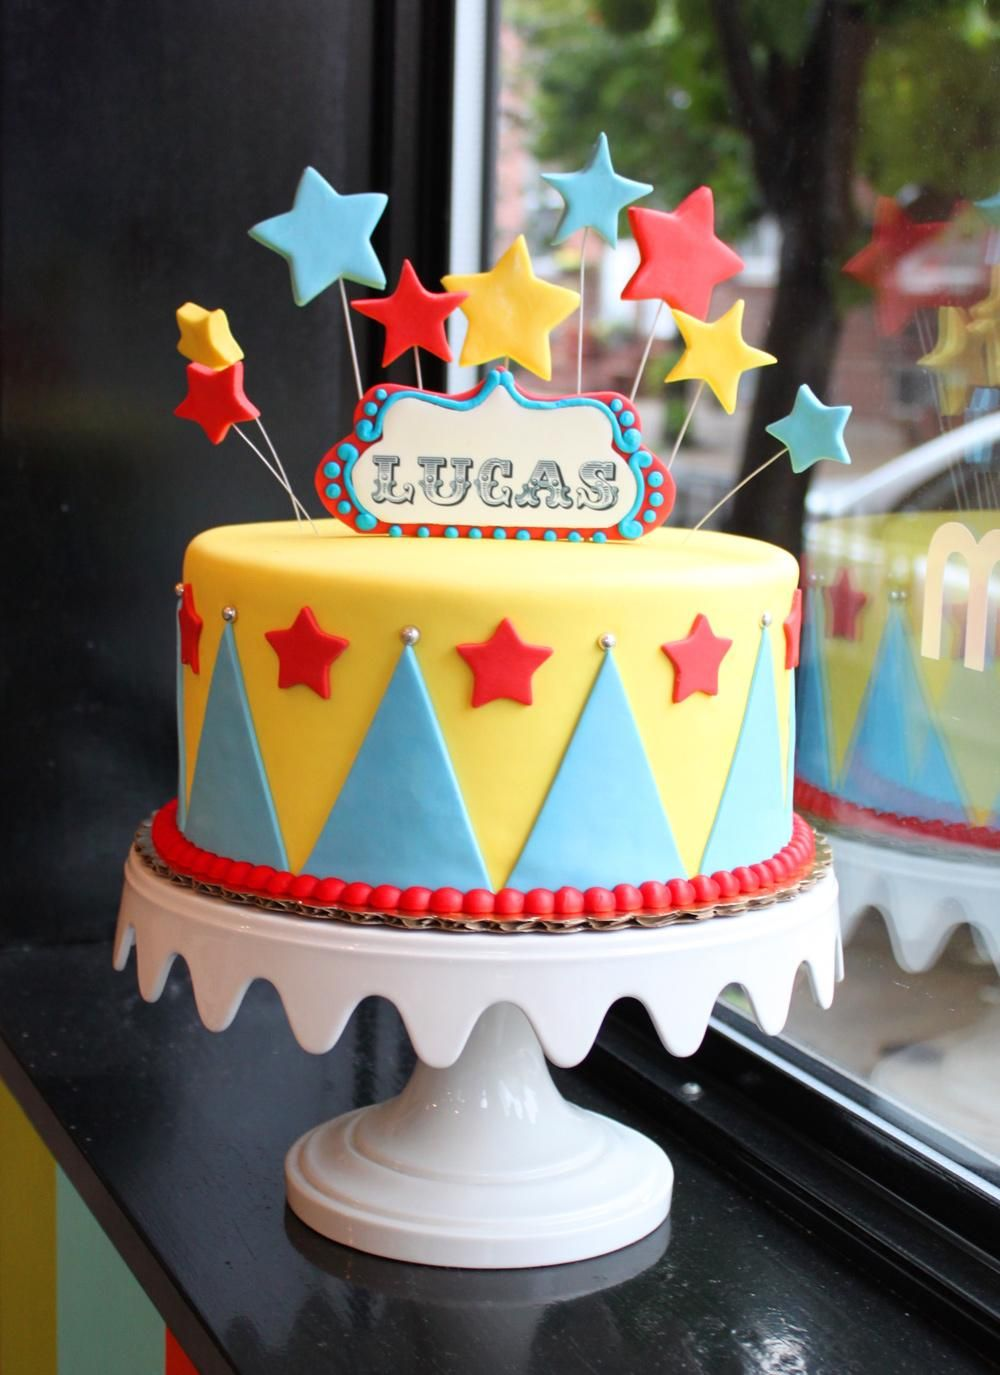 Swell Circus Celebration Cake Whipped Bakeshop Circus Birthday Cake Personalised Birthday Cards Veneteletsinfo